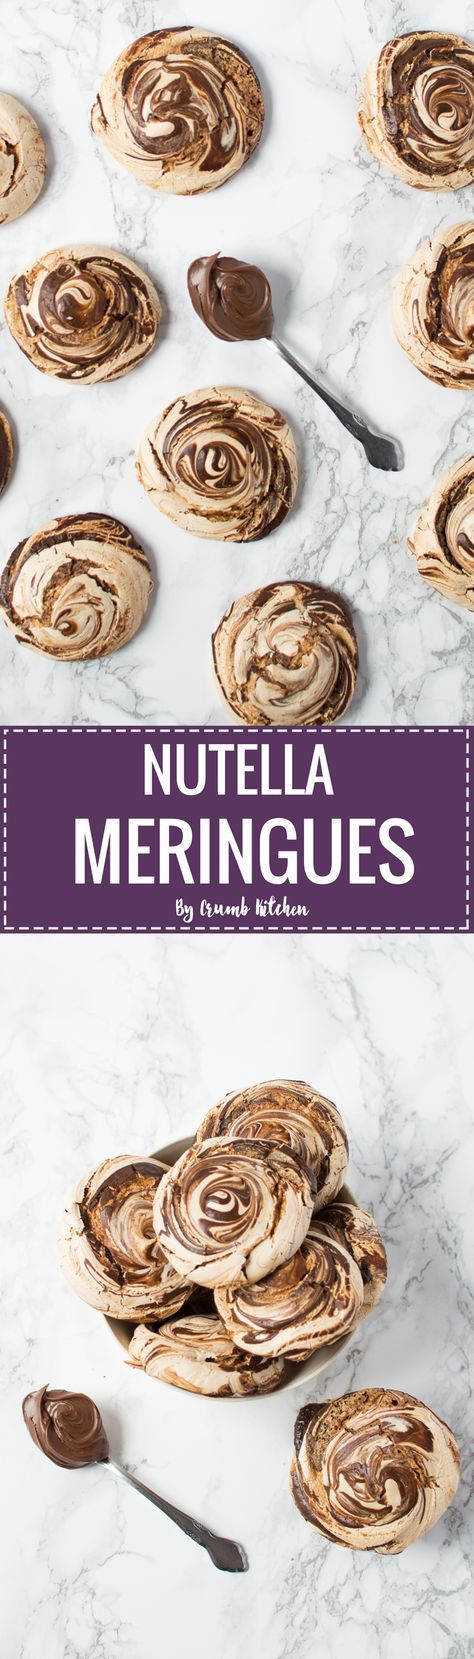 Pillowy clouds of sweet meringue swirled with warm melted Nutella create a beautiful, elegant treat. | http://crumbkitchen.com